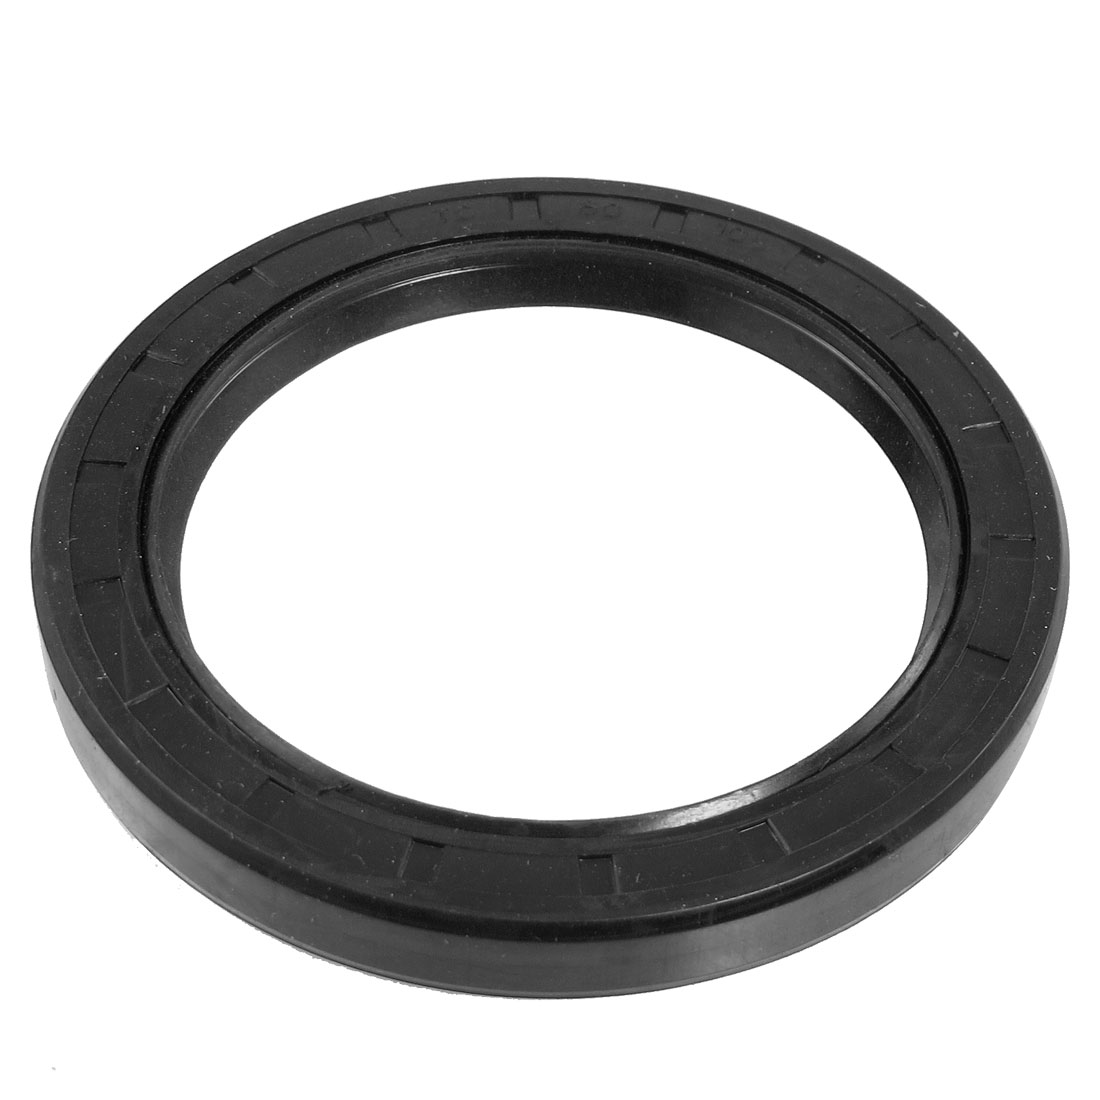 Steel Spring NBR Double Lip TC Oil Seal Black 80mm x 105mm x 12mm